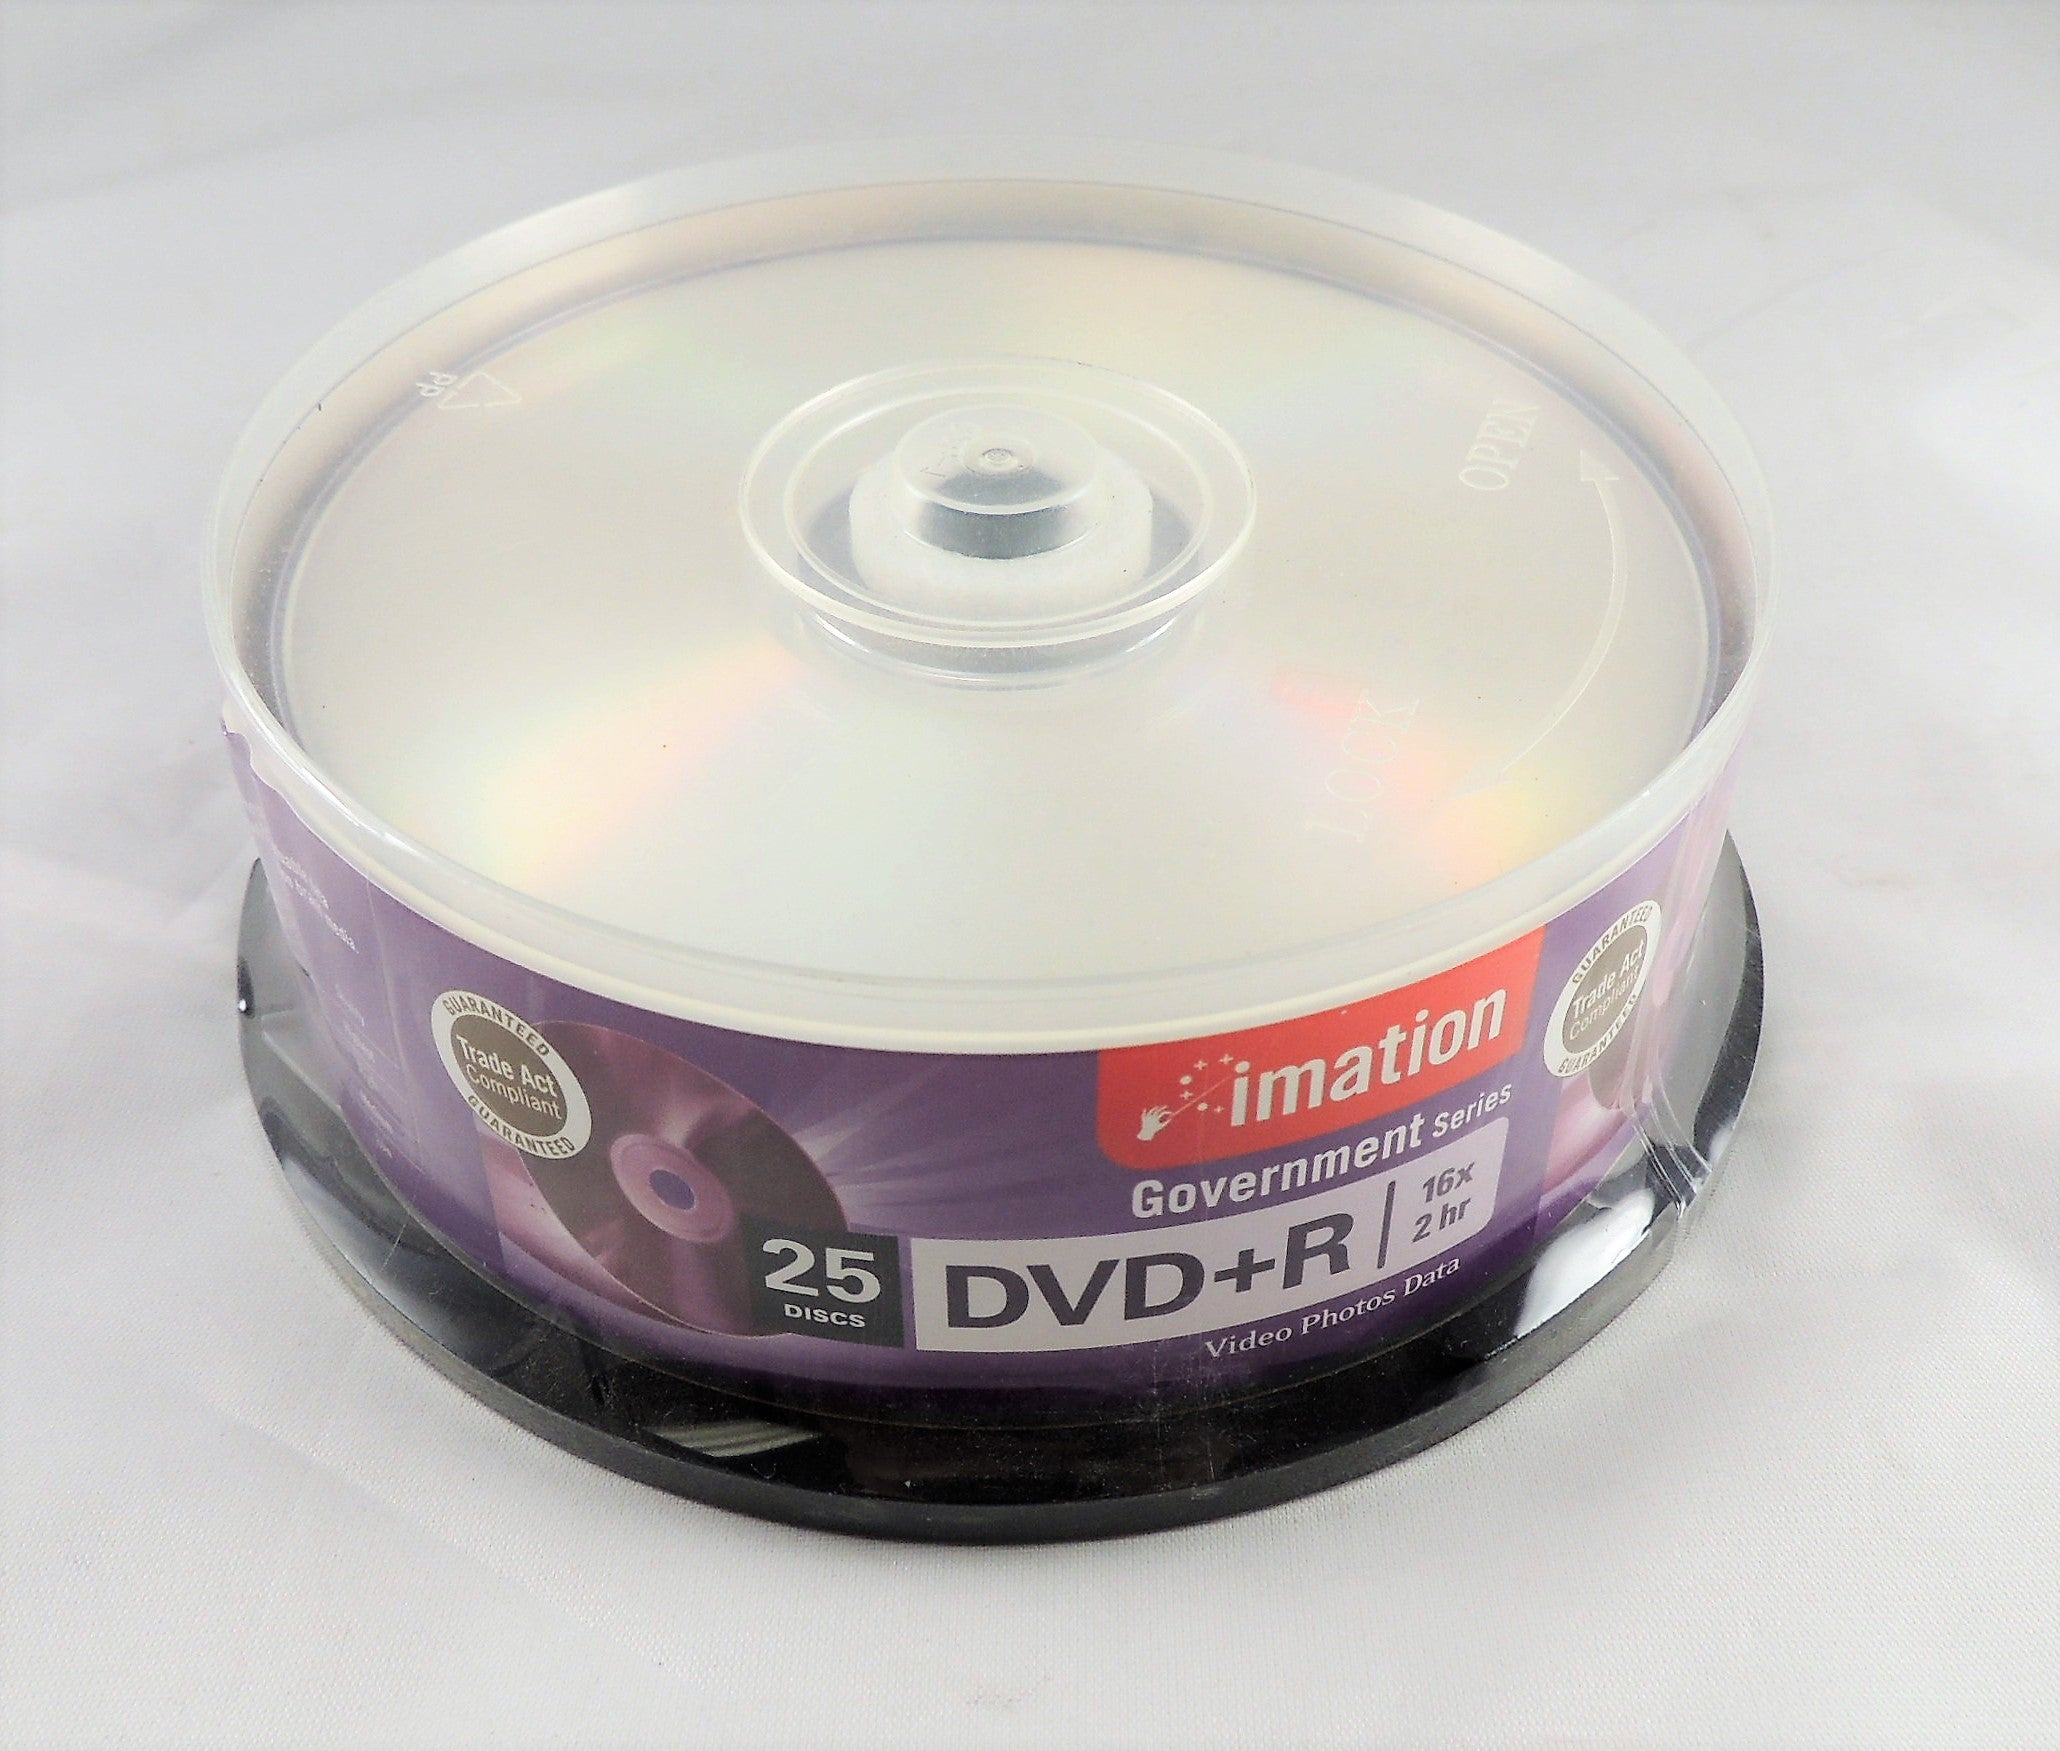 Brand New Imation Government Series DVD+R - 16x - 2 hr 25 Pk